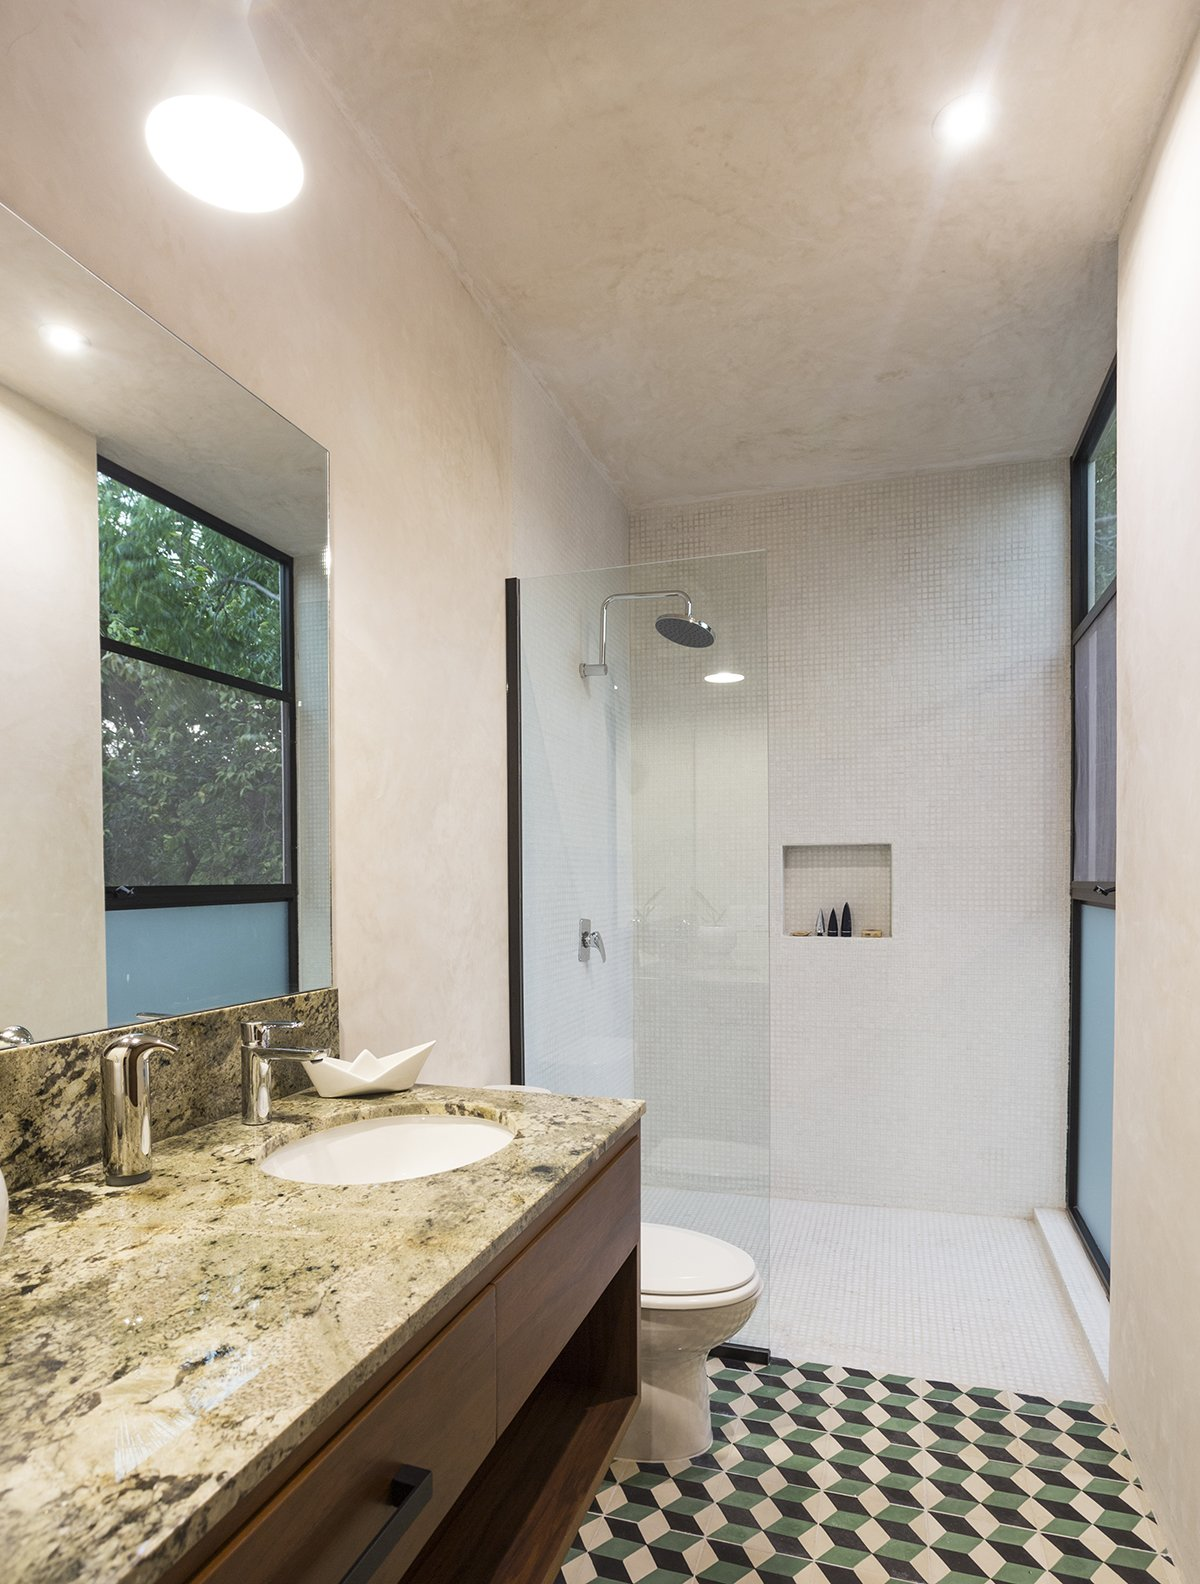 Bath Room, Marble Counter, Open Shower, Cement Tile Floor, Undermount Sink, Pendant Lighting, Concrete Wall, and One Piece Toilet White polished concrete walls contrast with the colorfull Cement Tiles and the Marble on counter  Lemon Tree House by Taller Estilo Arquitectura S de R.L de C.V